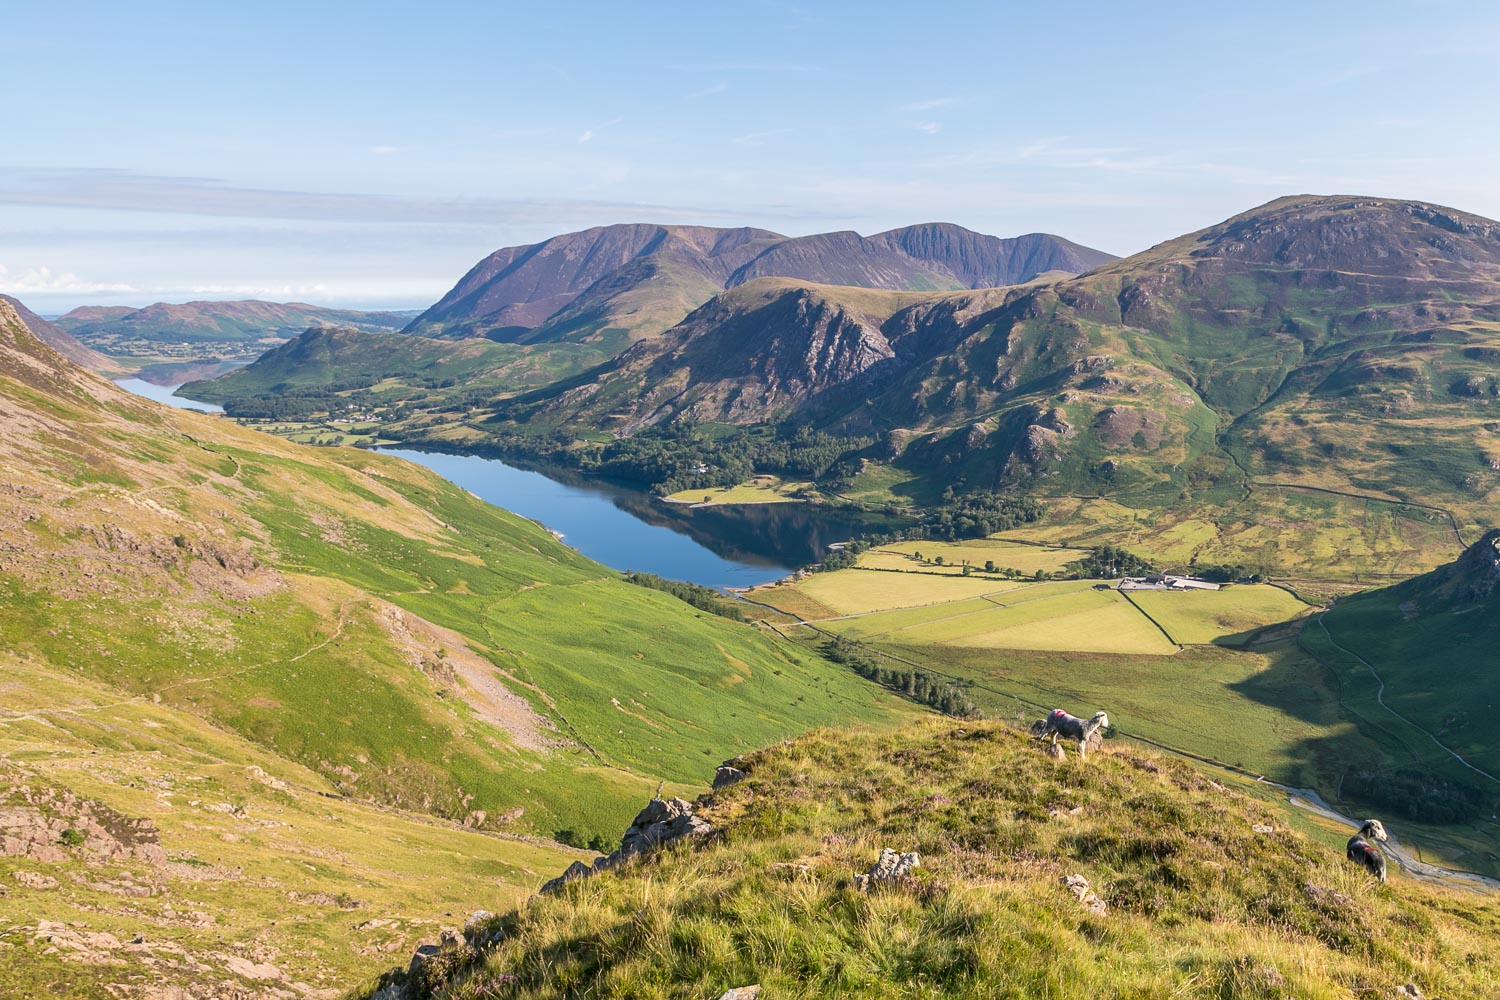 Buttermere, Crummock Water